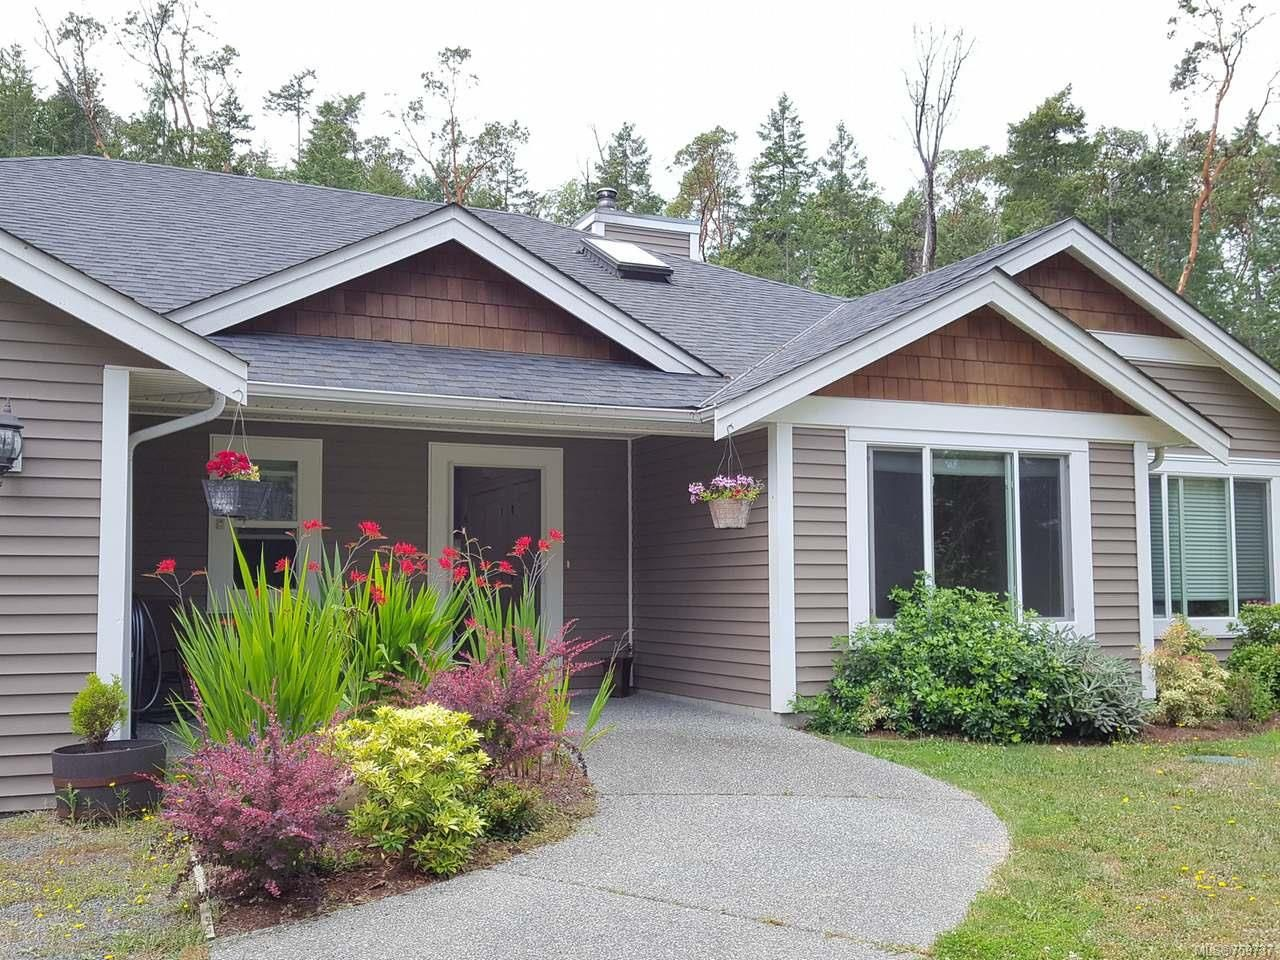 Main Photo: 1960 Rena Rd in NANOOSE BAY: PQ Nanoose House for sale (Parksville/Qualicum)  : MLS®# 759737